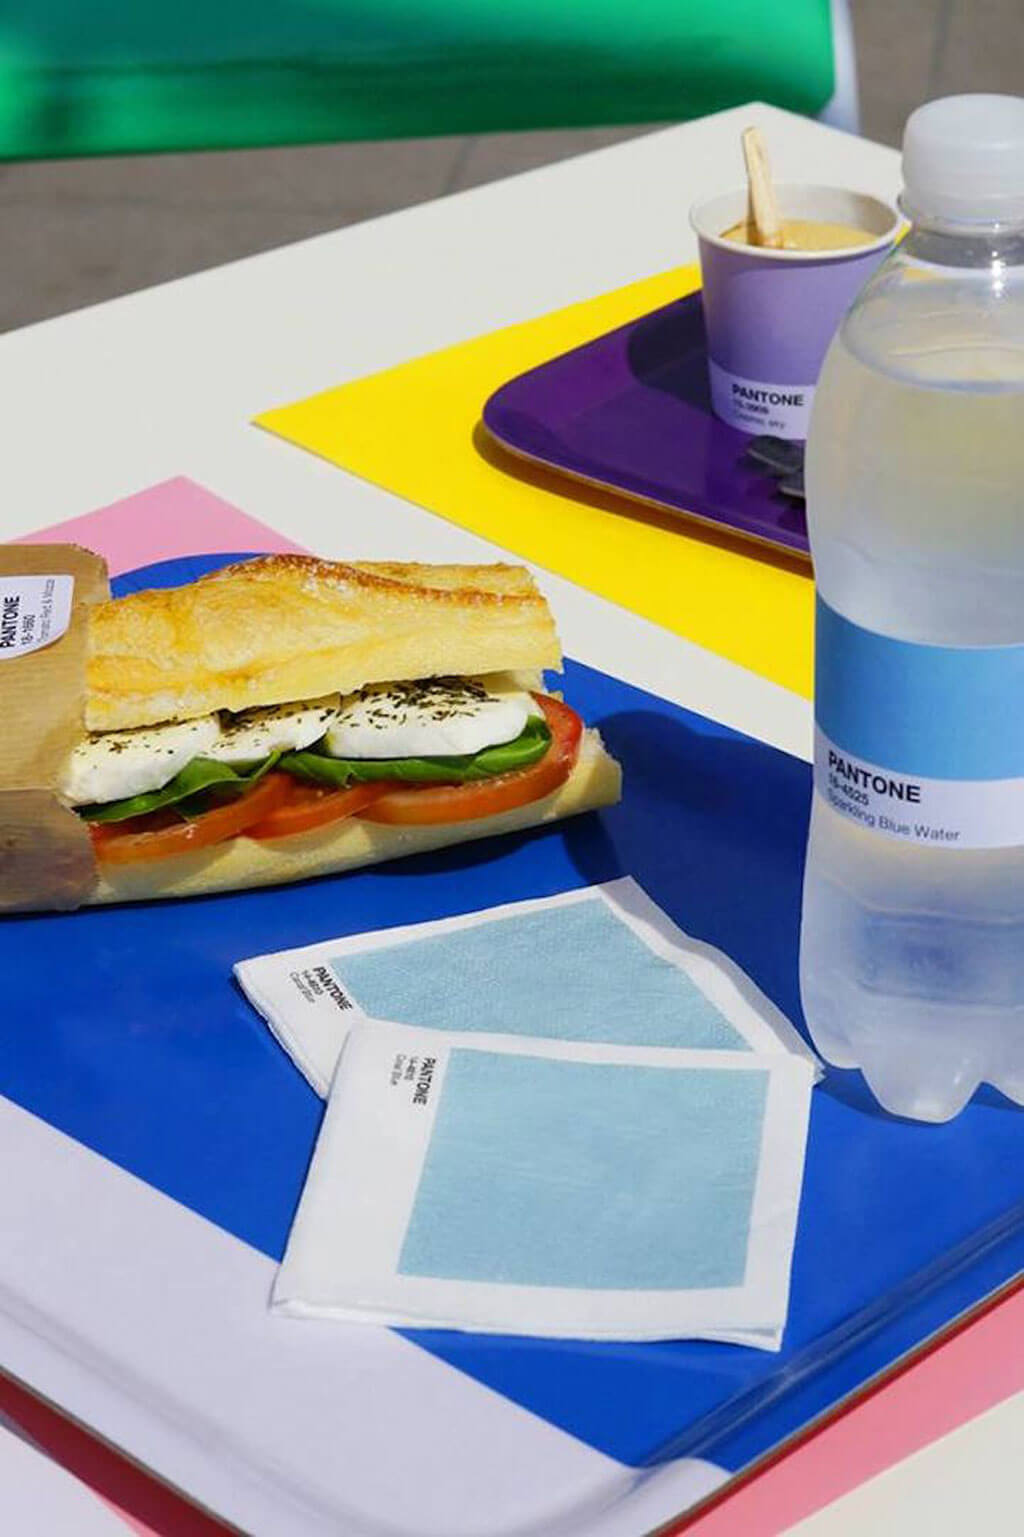 Pantone colour coordinated food and design